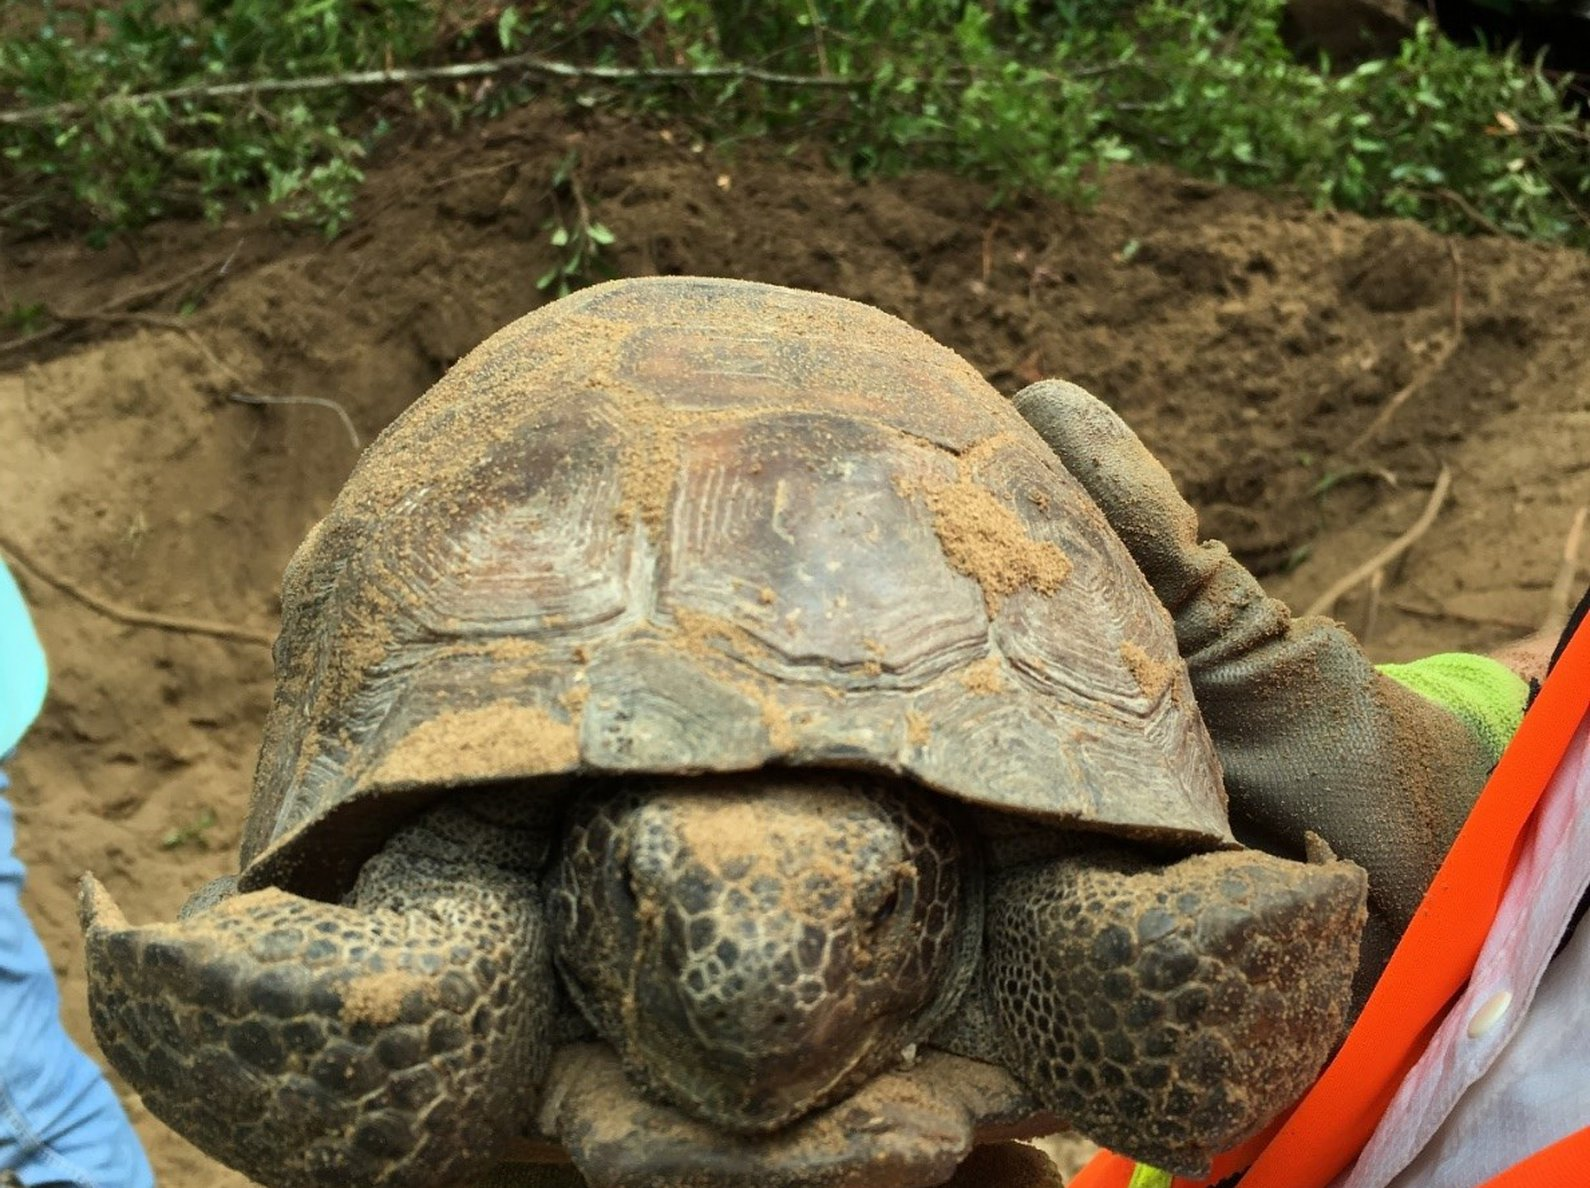 capture of an adult gopher tortoise - environmental consulting services firm normandeau associates